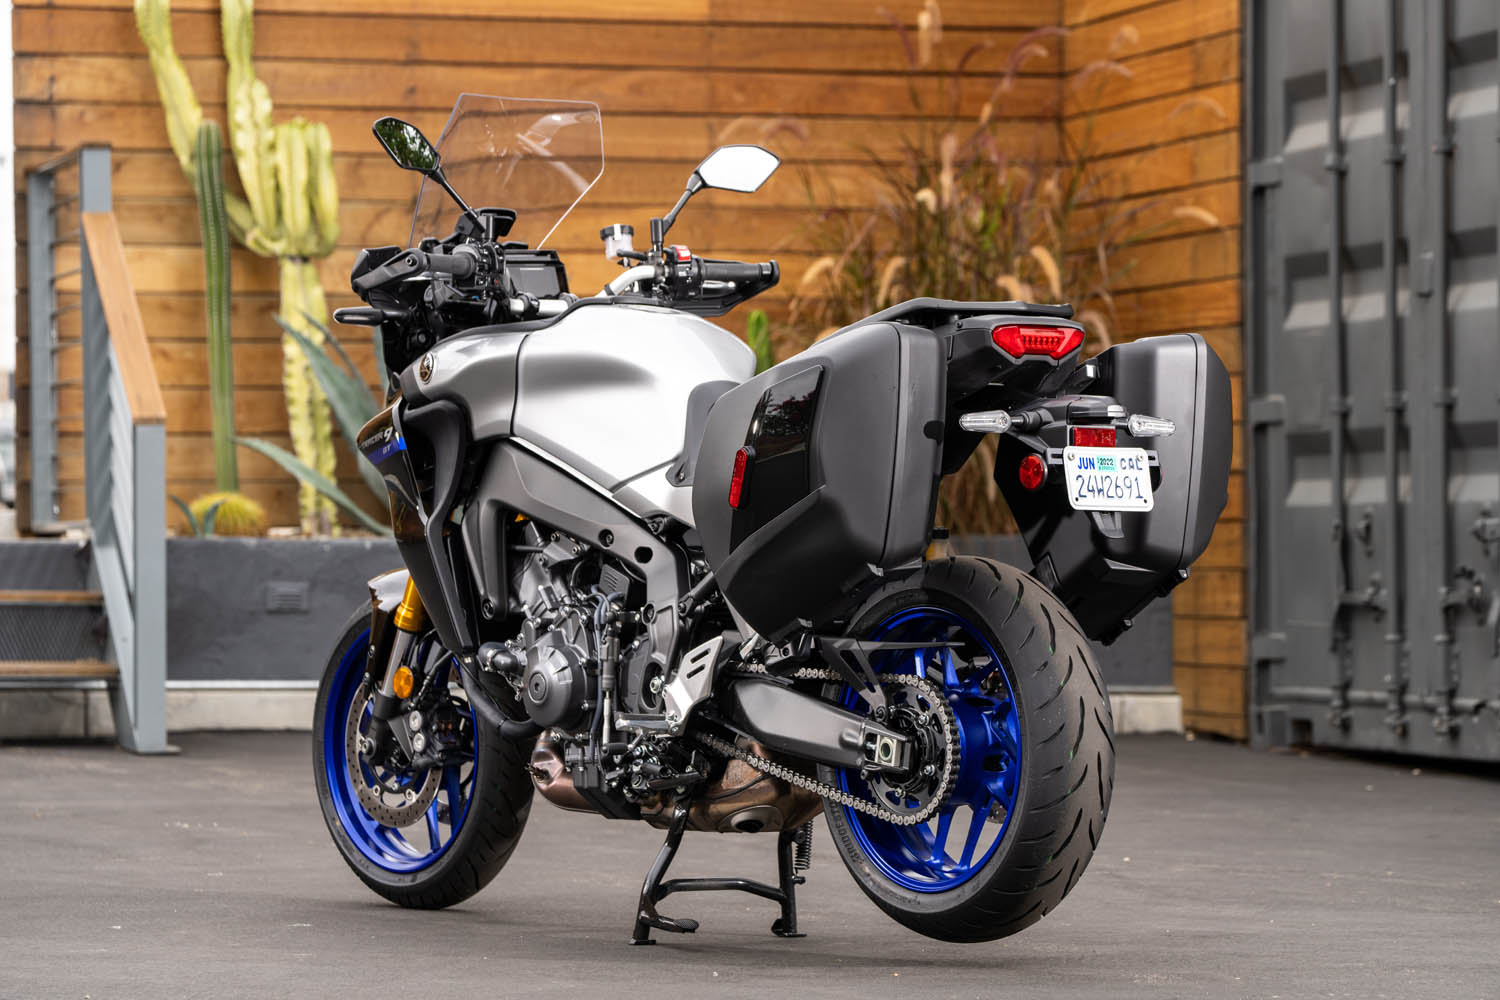 2021 Yamaha Tracer 9 GT review